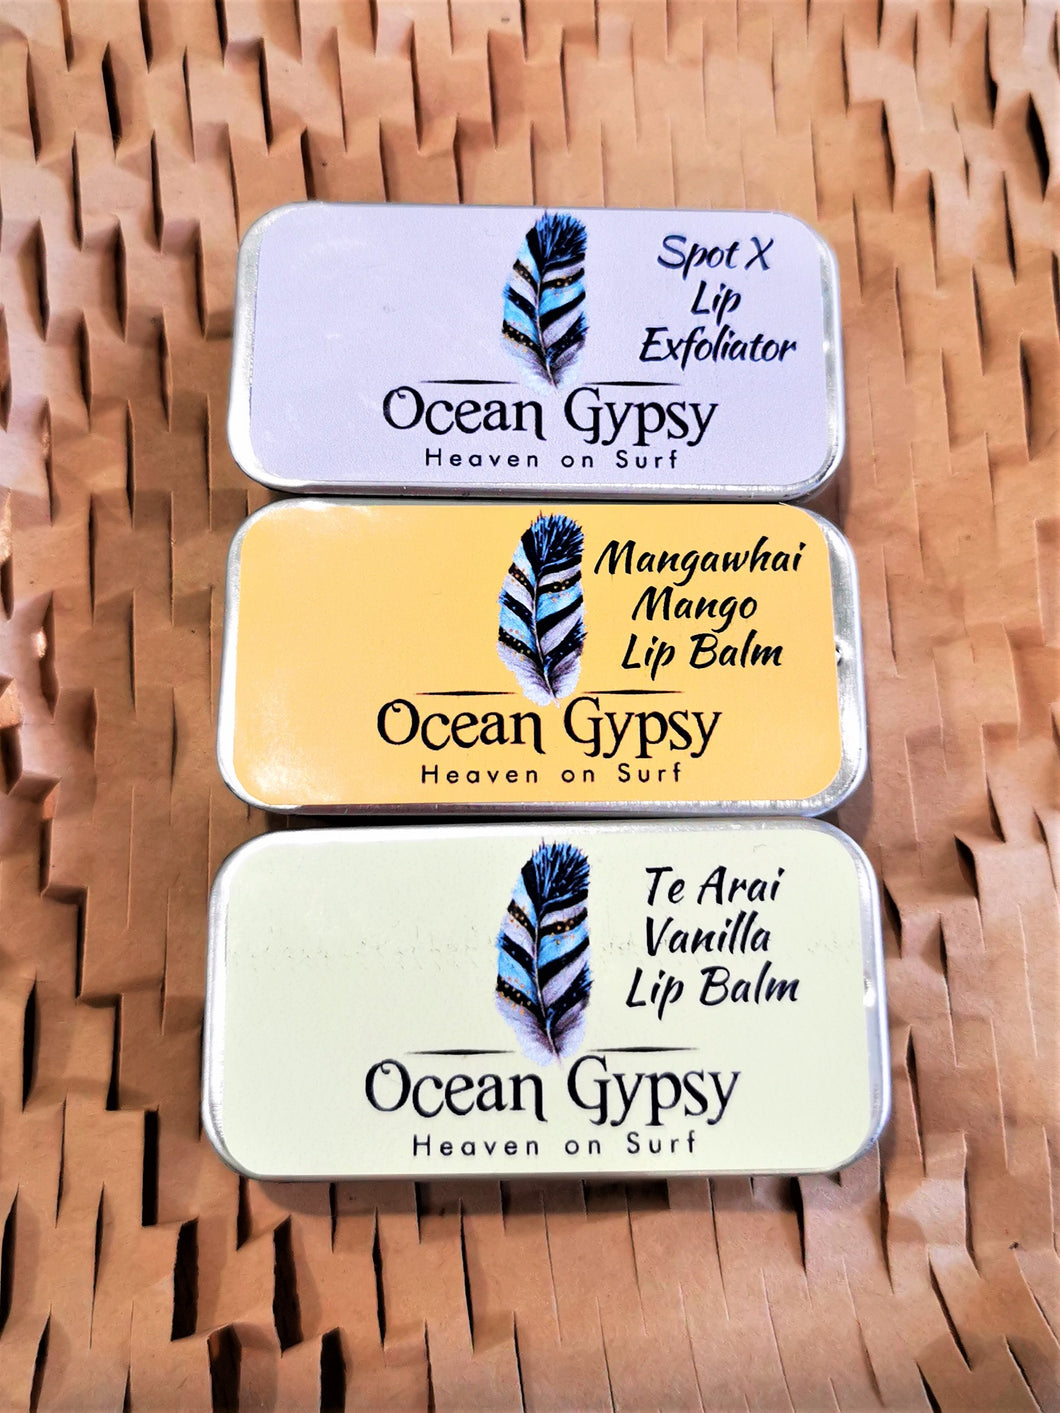 Ocean Gypsy Lipbalm in four different styles - Ocean Gypsy NZ